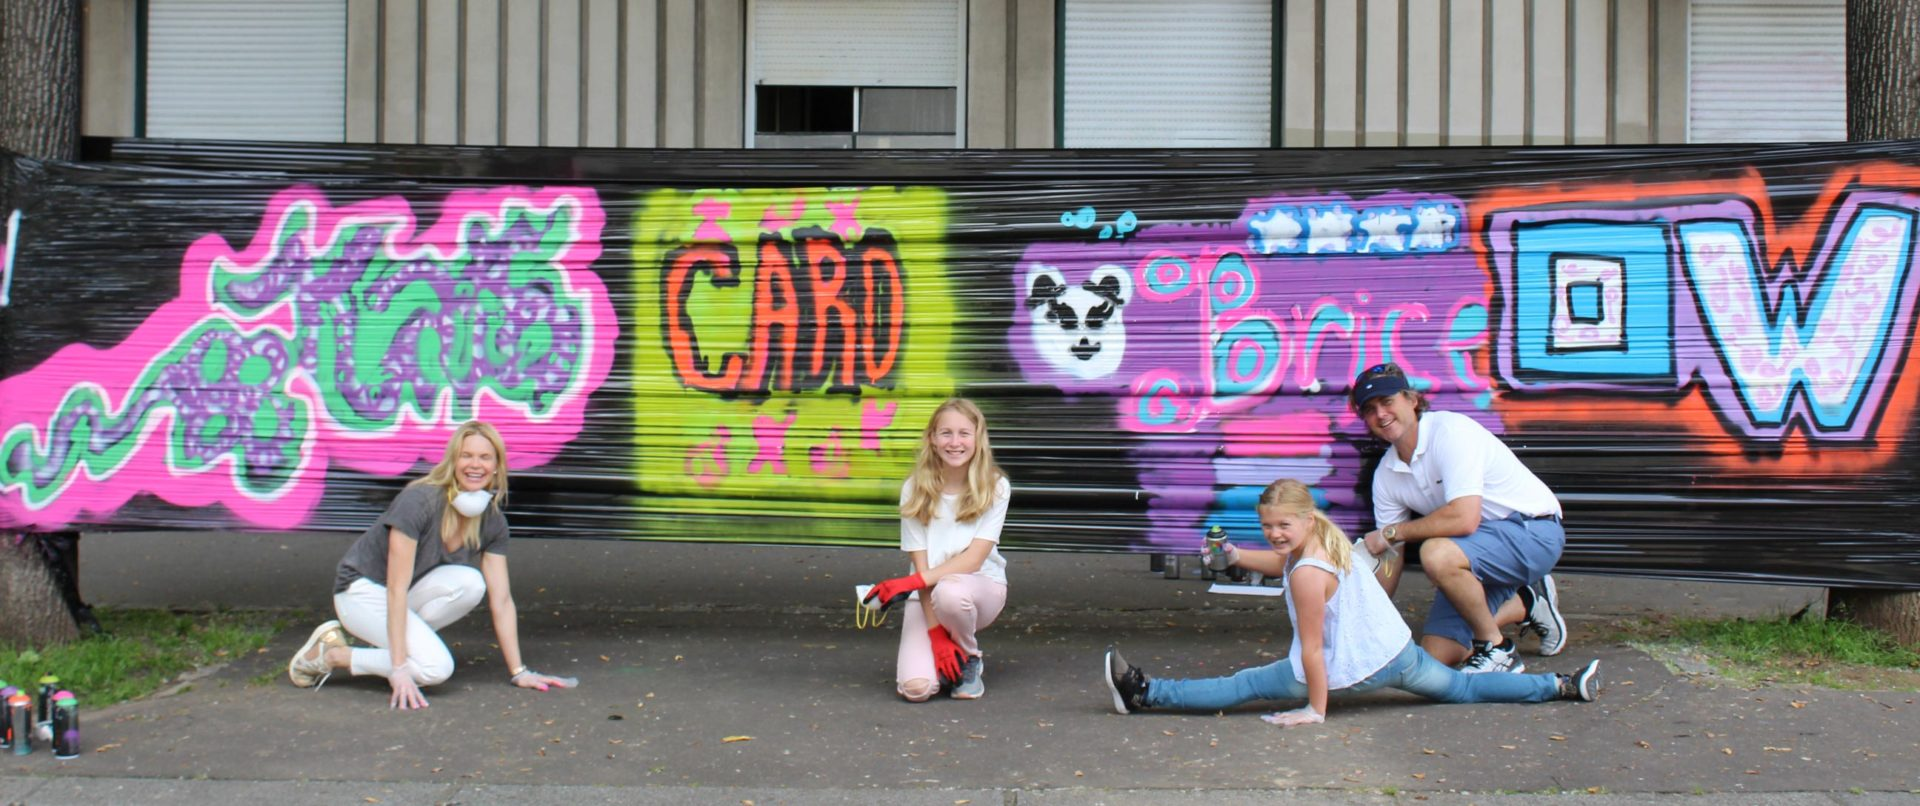 paris-street-art-family-activity